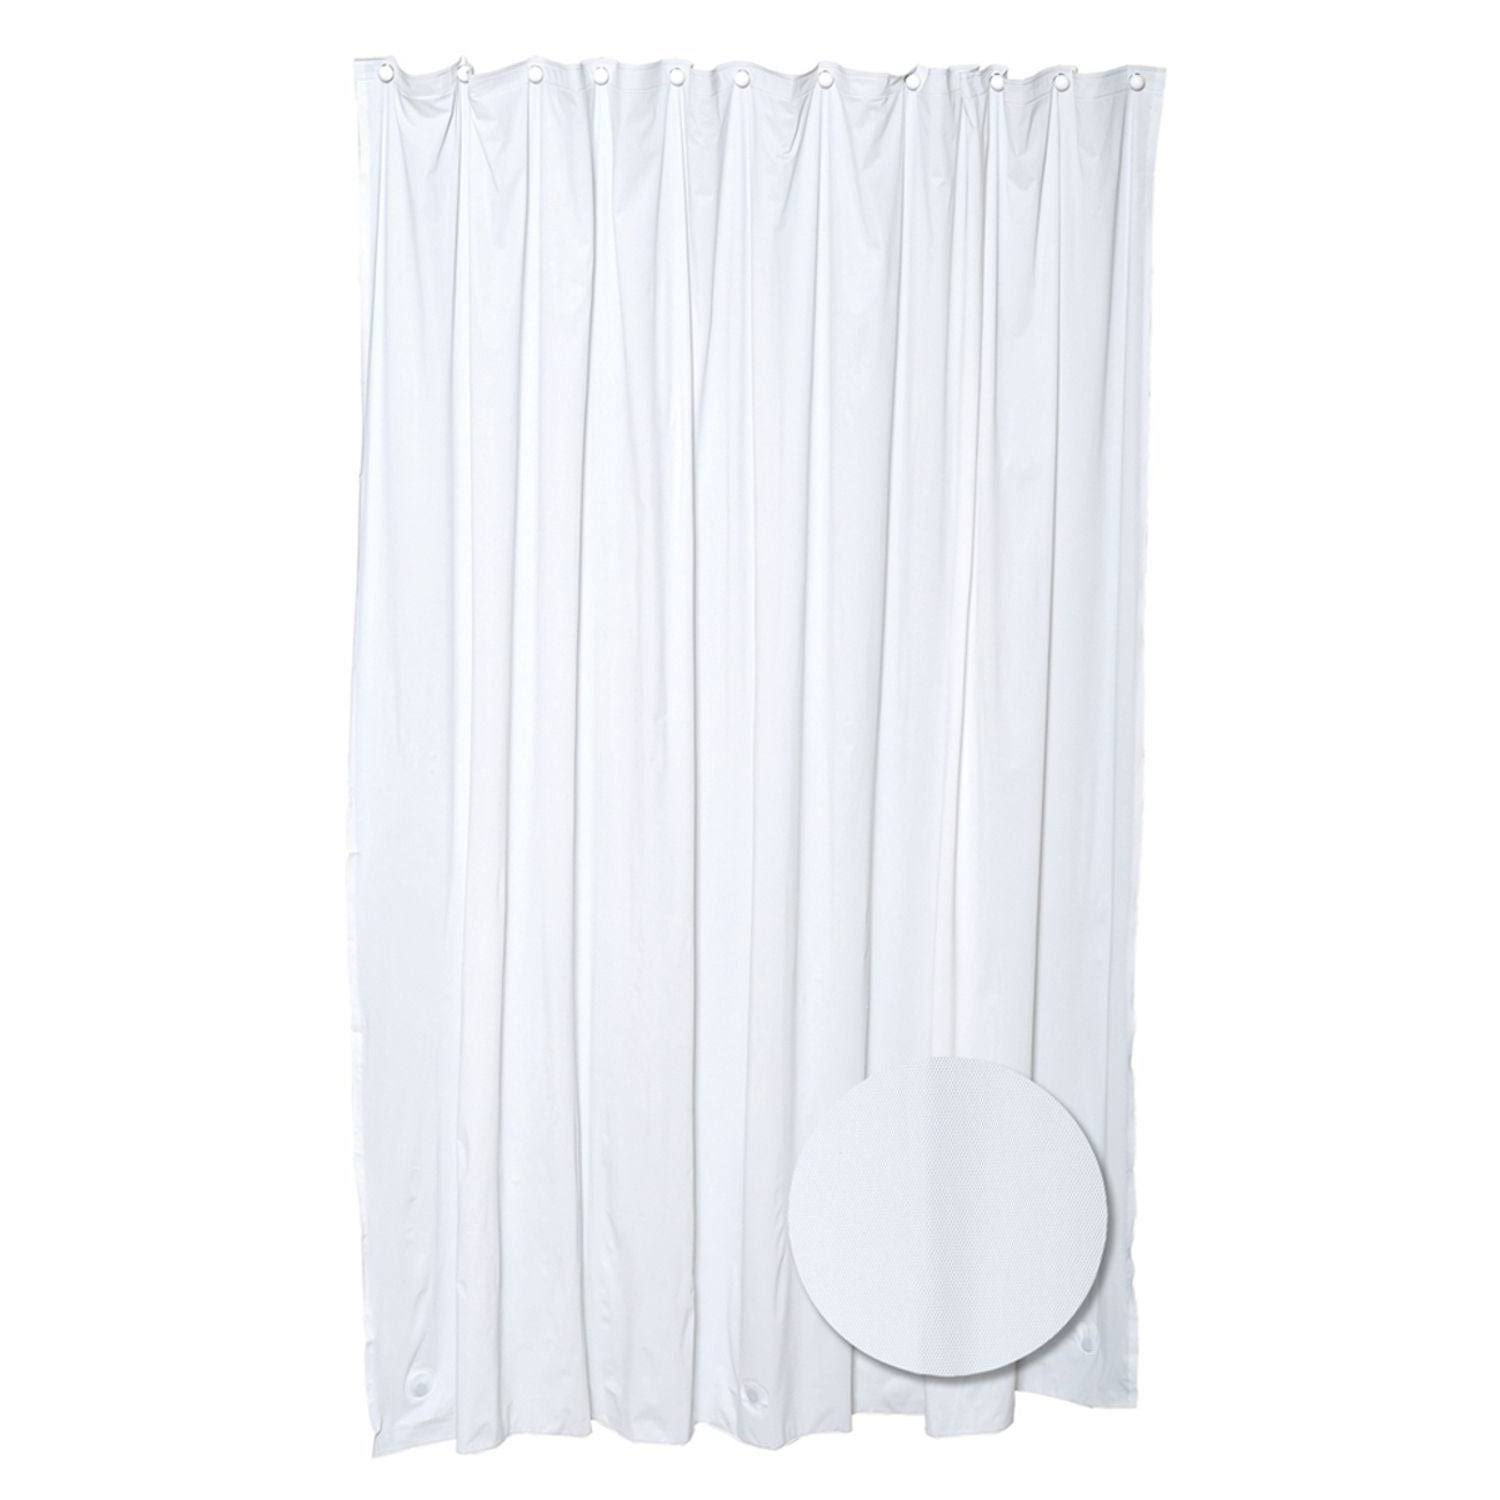 Zenith Medium Gauge Vinyl Shower Curtain Liner - H28W